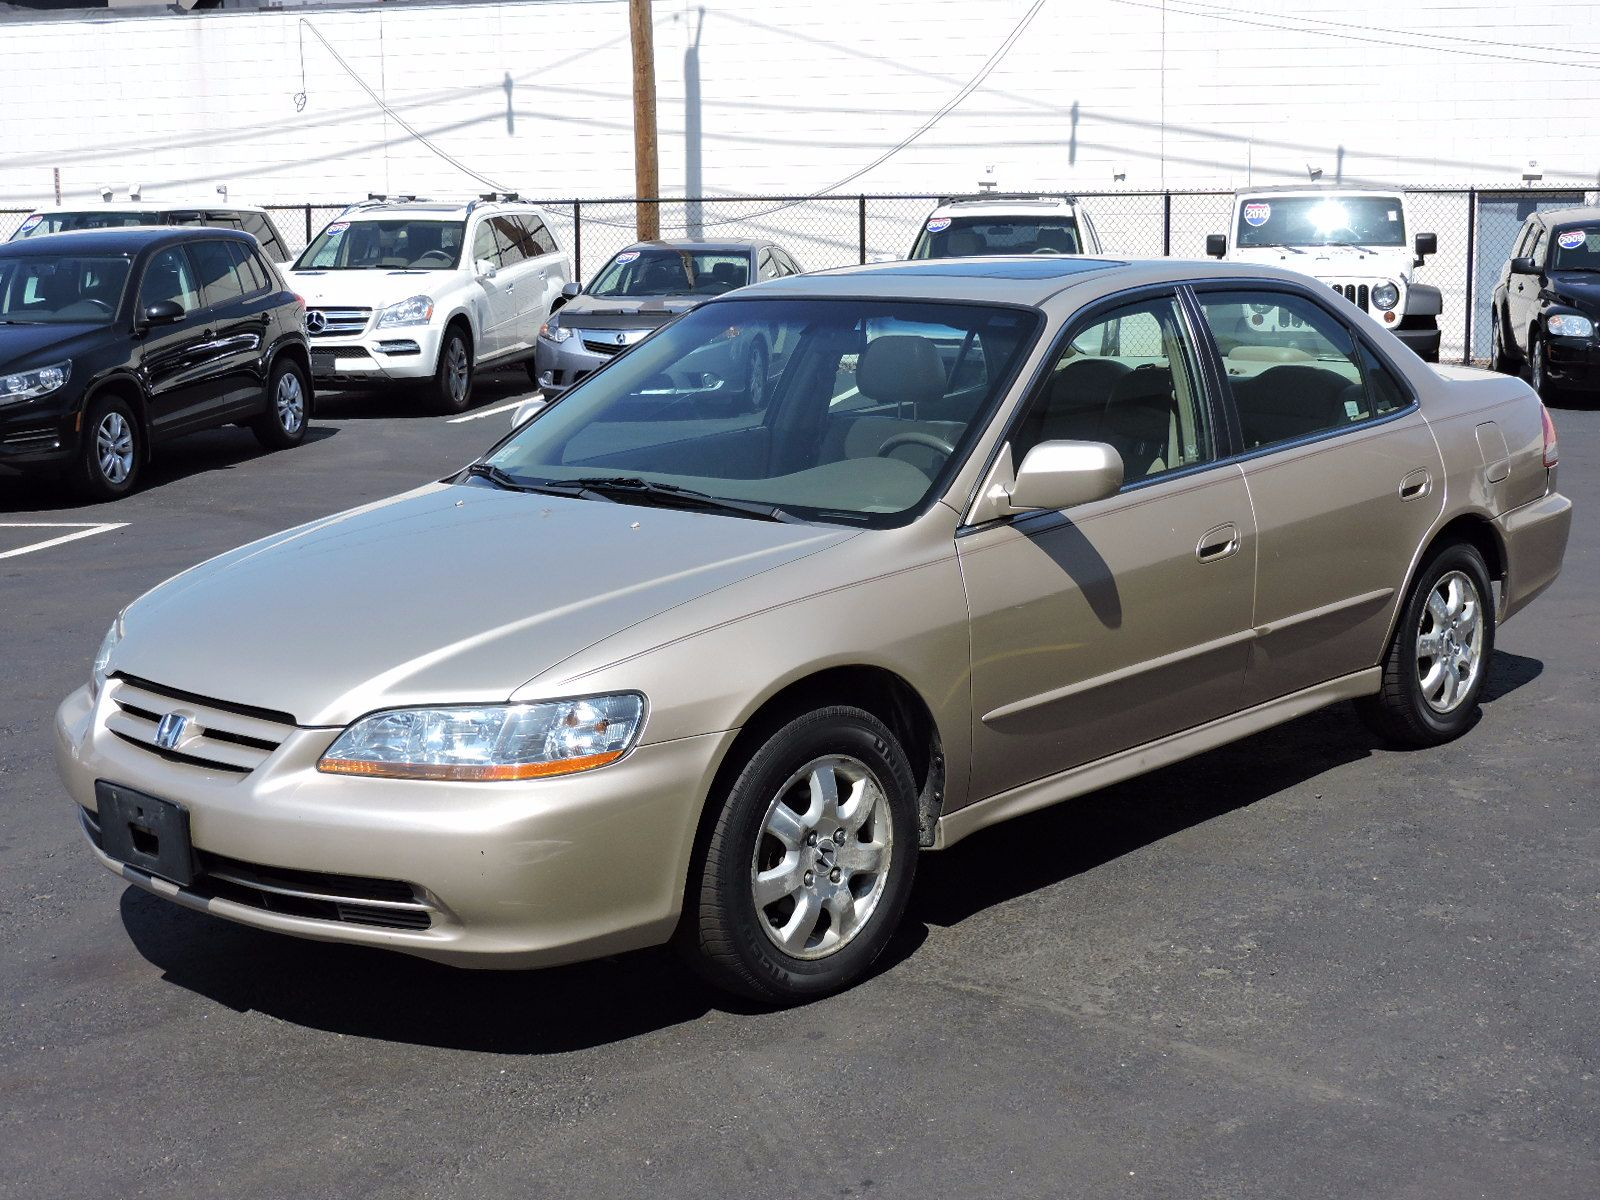 used 2001 honda accord sdn ex wleather at saugus auto mall. Black Bedroom Furniture Sets. Home Design Ideas